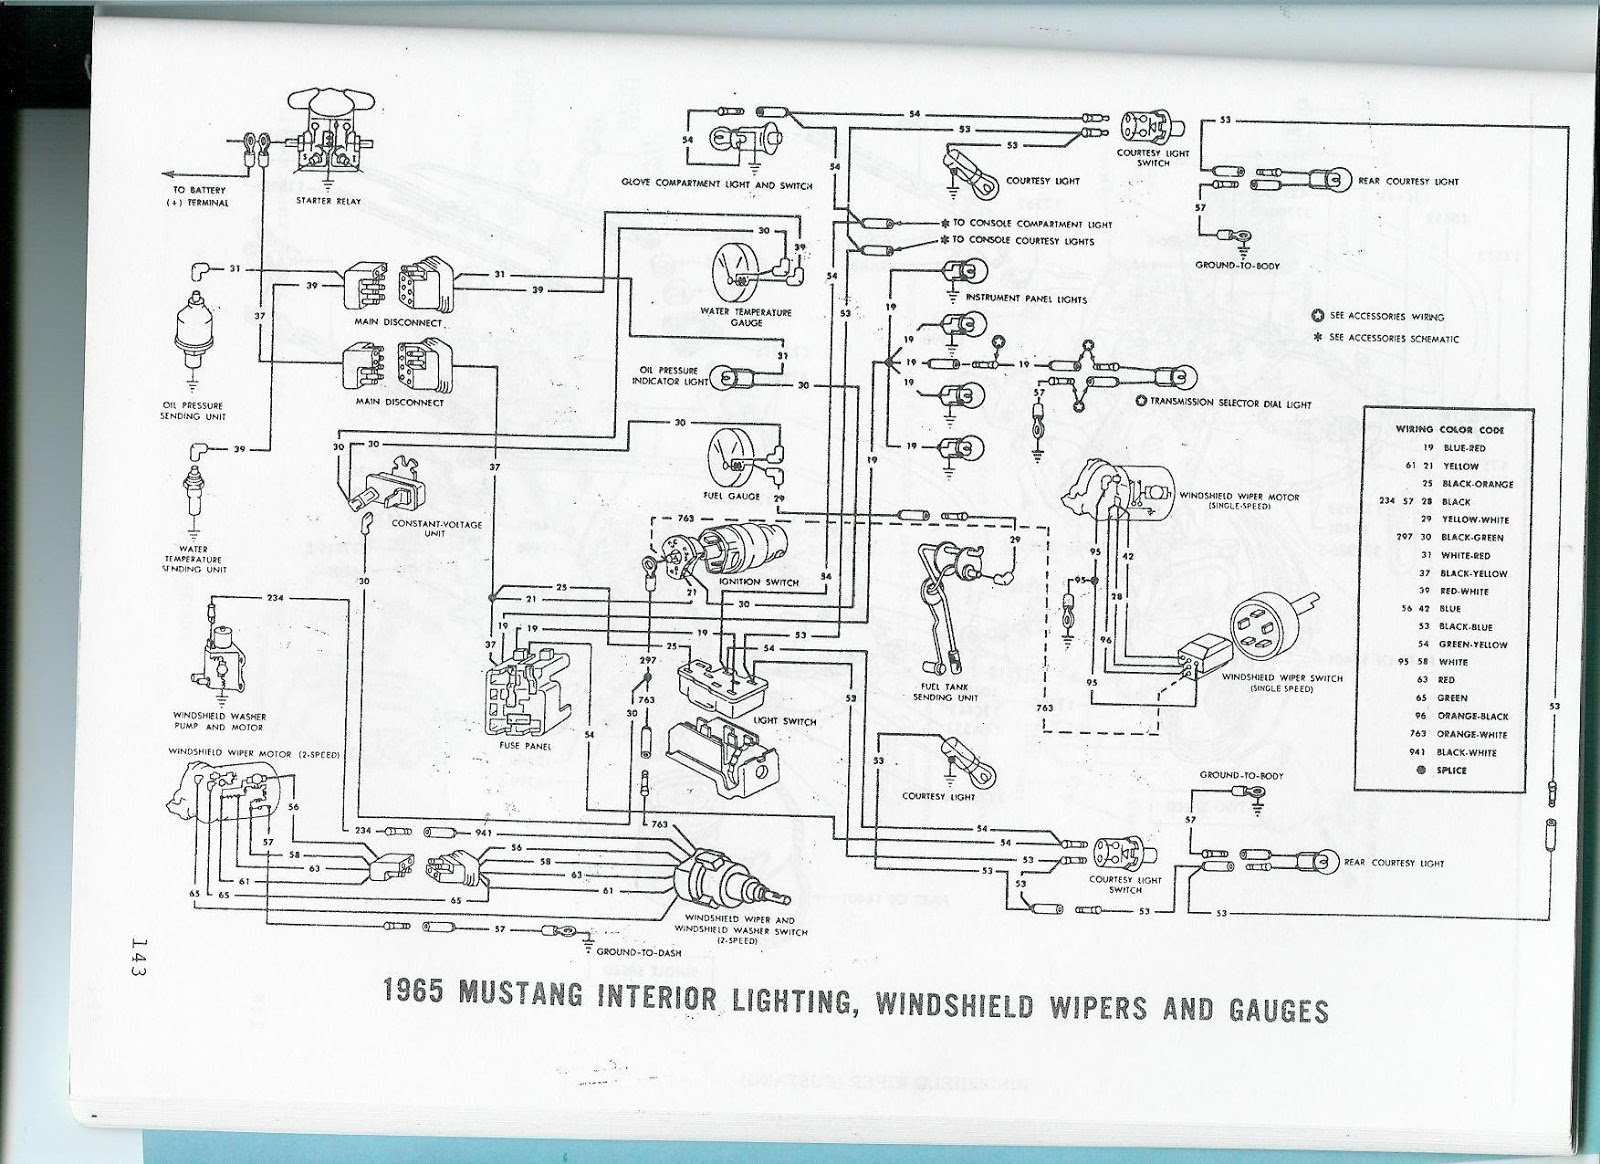 Ignition Coil Wiring Diagram 65 Chevelle Libraries 1970 Headlight Librarythe Care And Feeding Of Ponies 1965 Mustang Diagrams